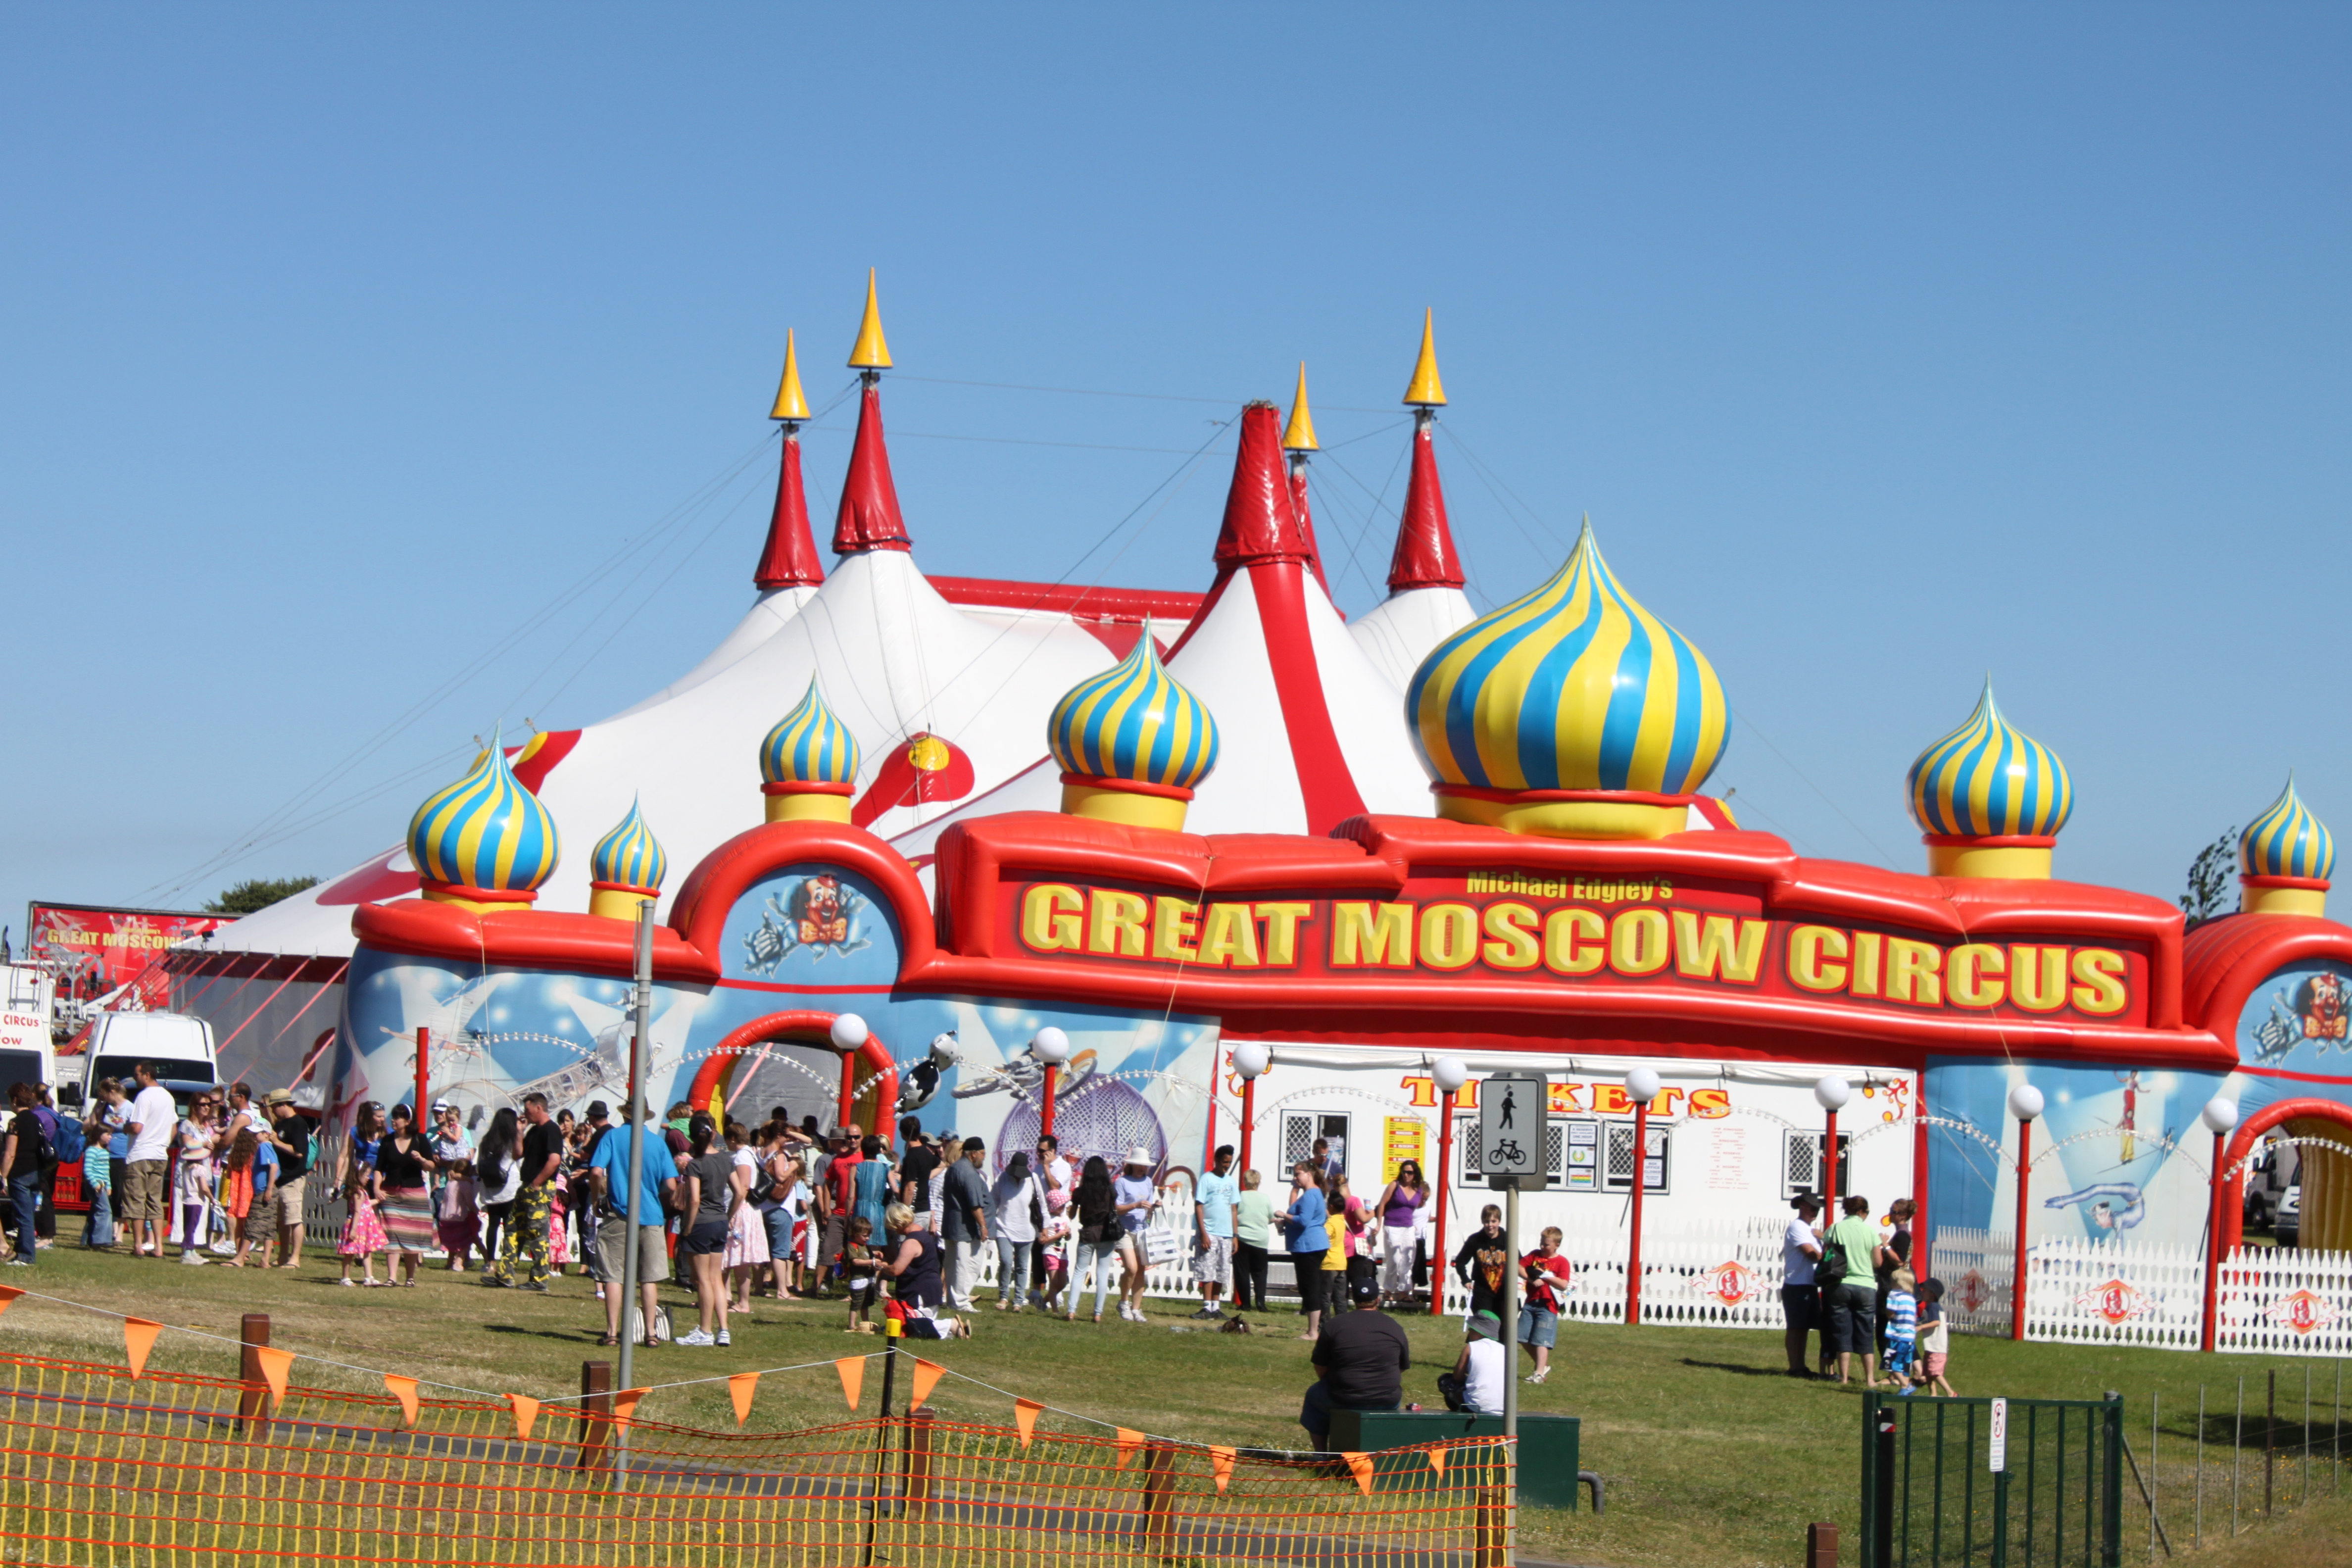 Cirkus - Page 3 Great-moscow-circus-tent